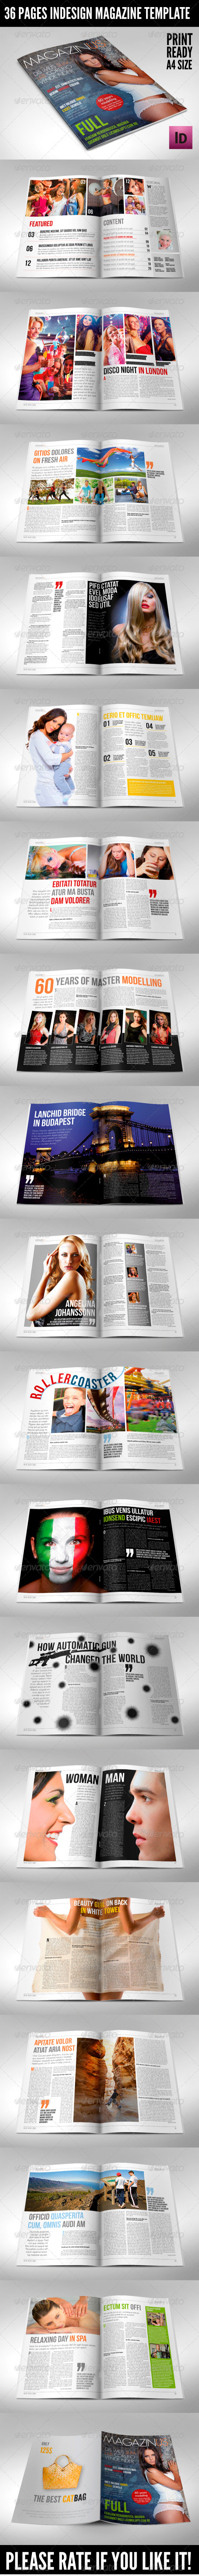 36 Pages Modern Magazine InDesign Template - Magazines Print Templates